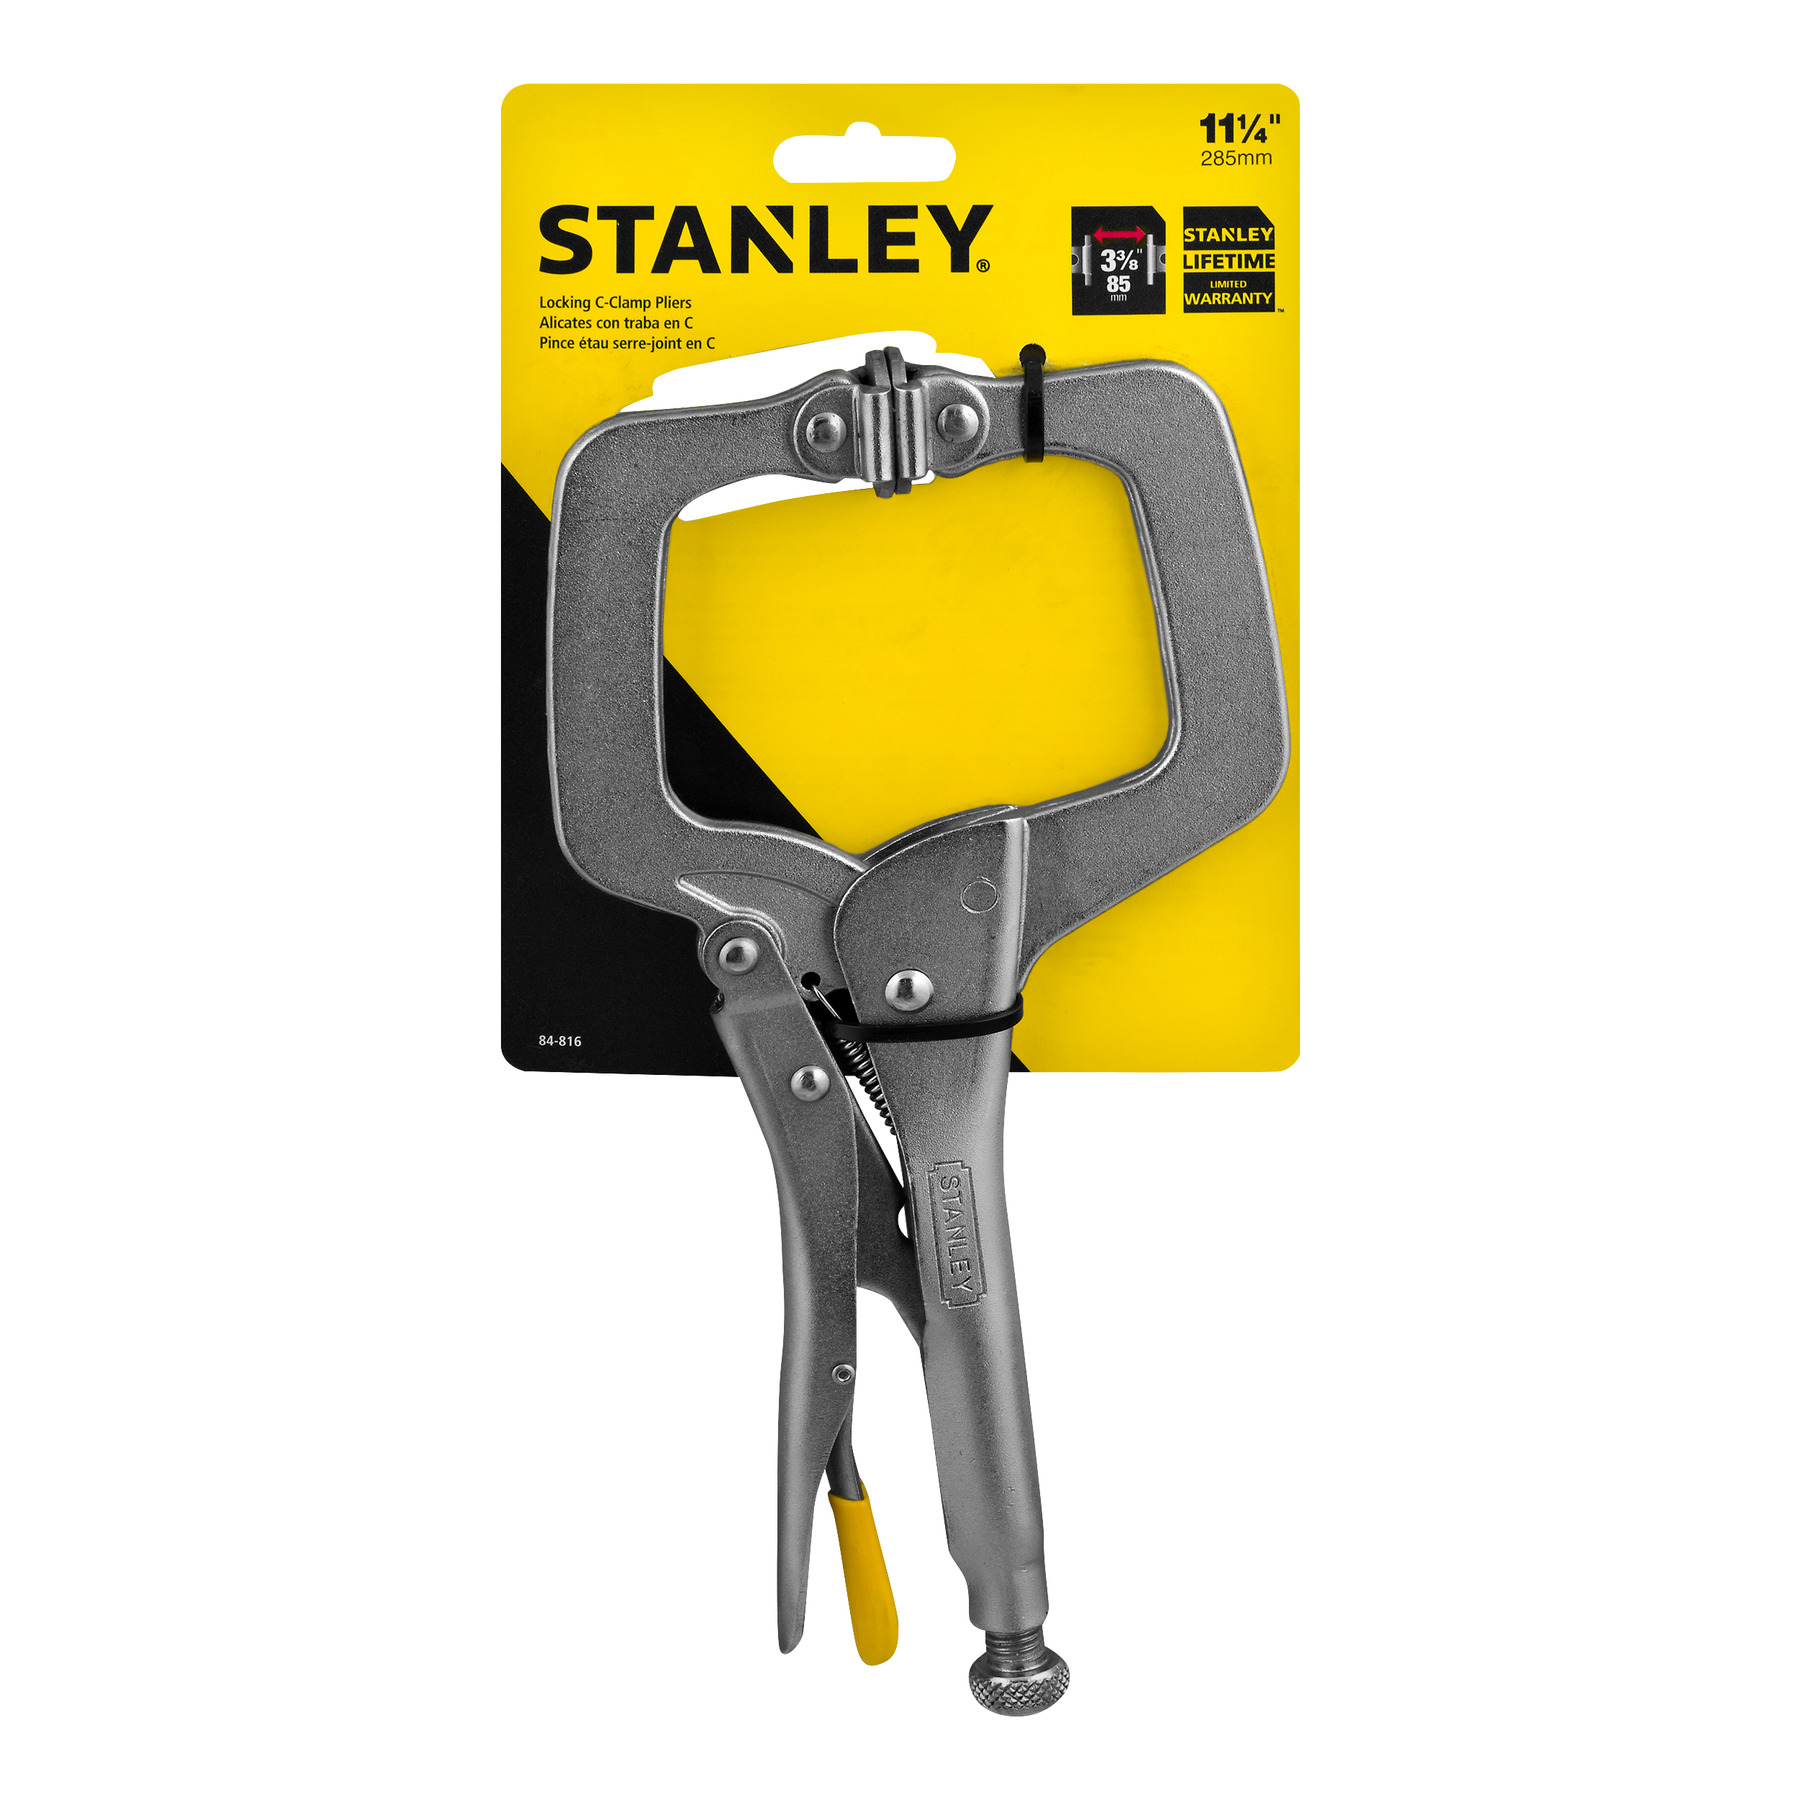 "Stanley Locking C - Clamp Pliers 11 1/4"", 1.0 CT"